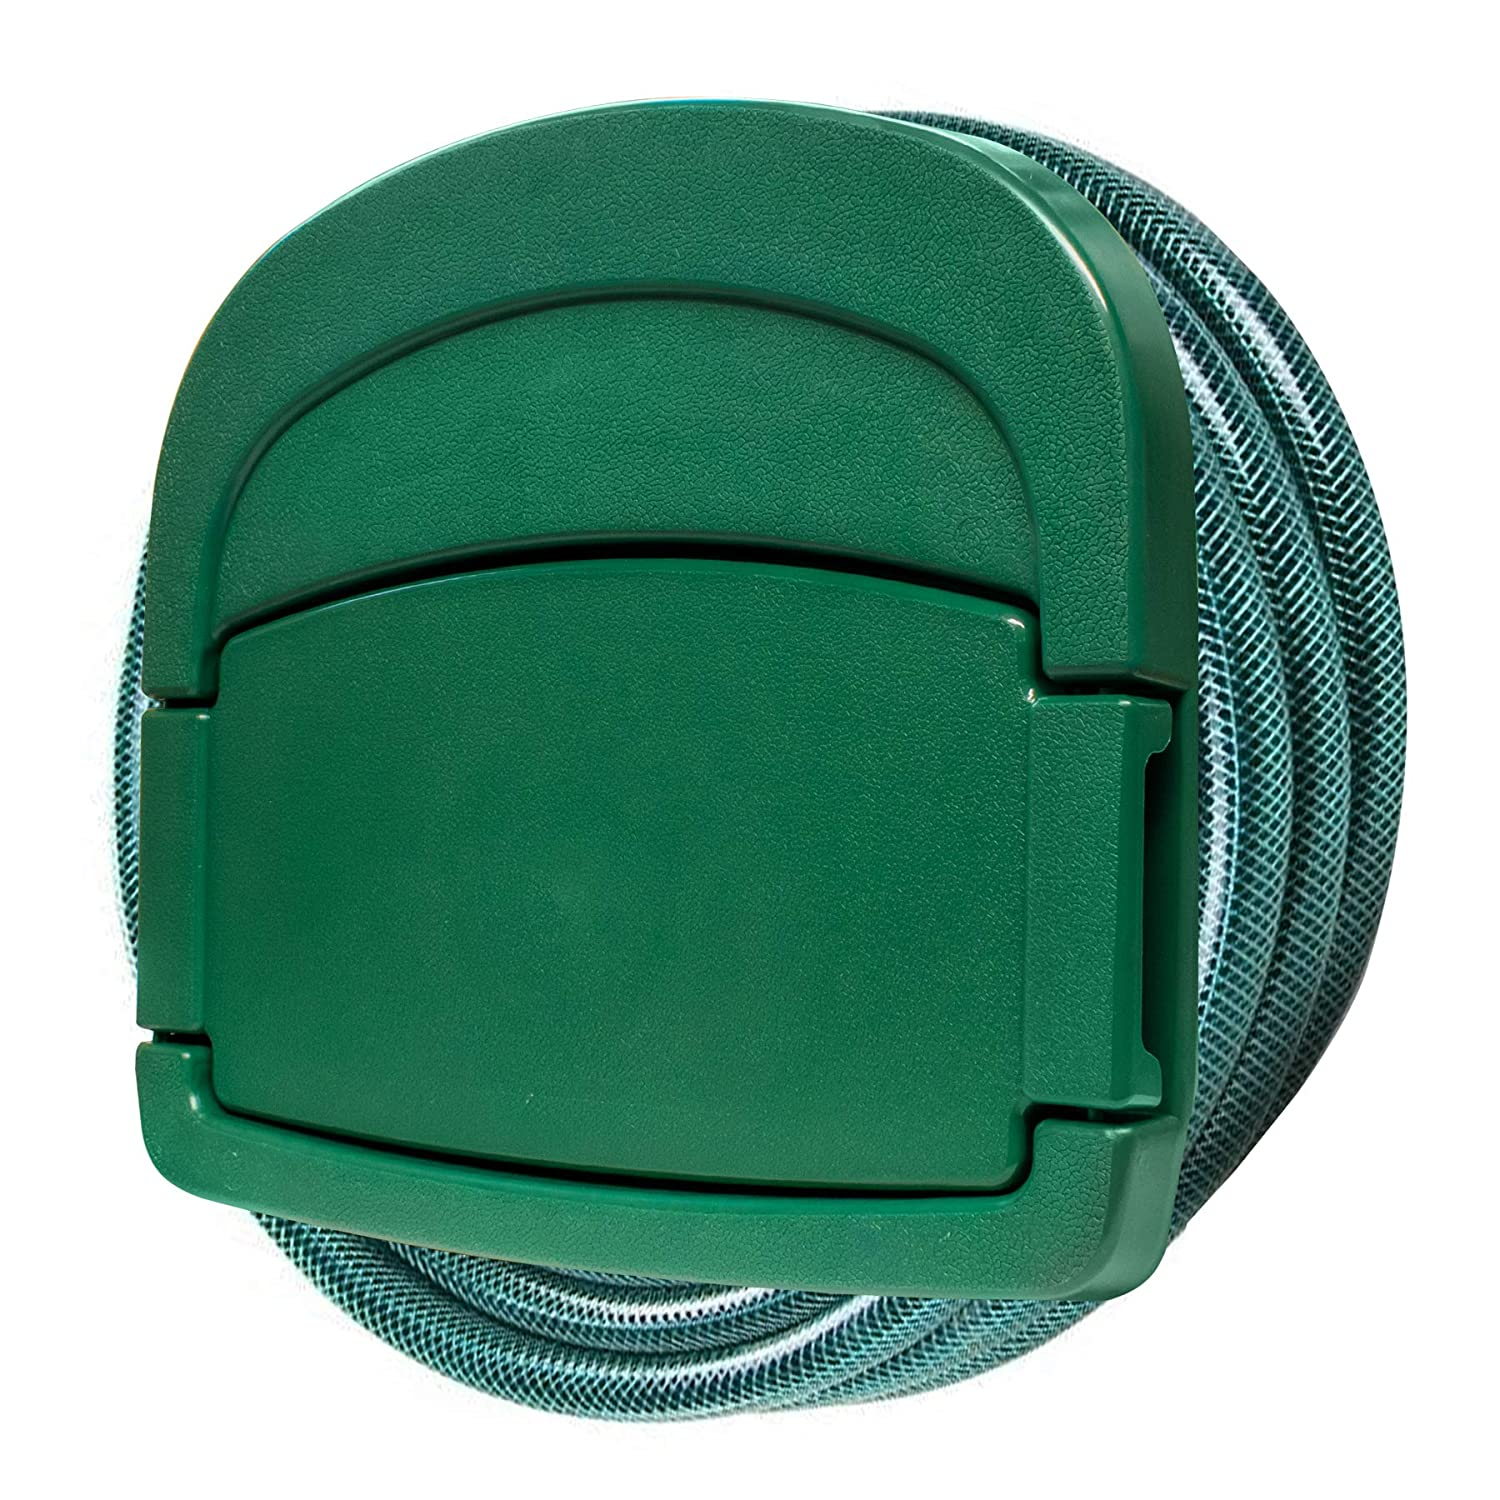 KCT Garden Hose Hanger with Storage Compartment - Stores up to 45 Metres of Hose